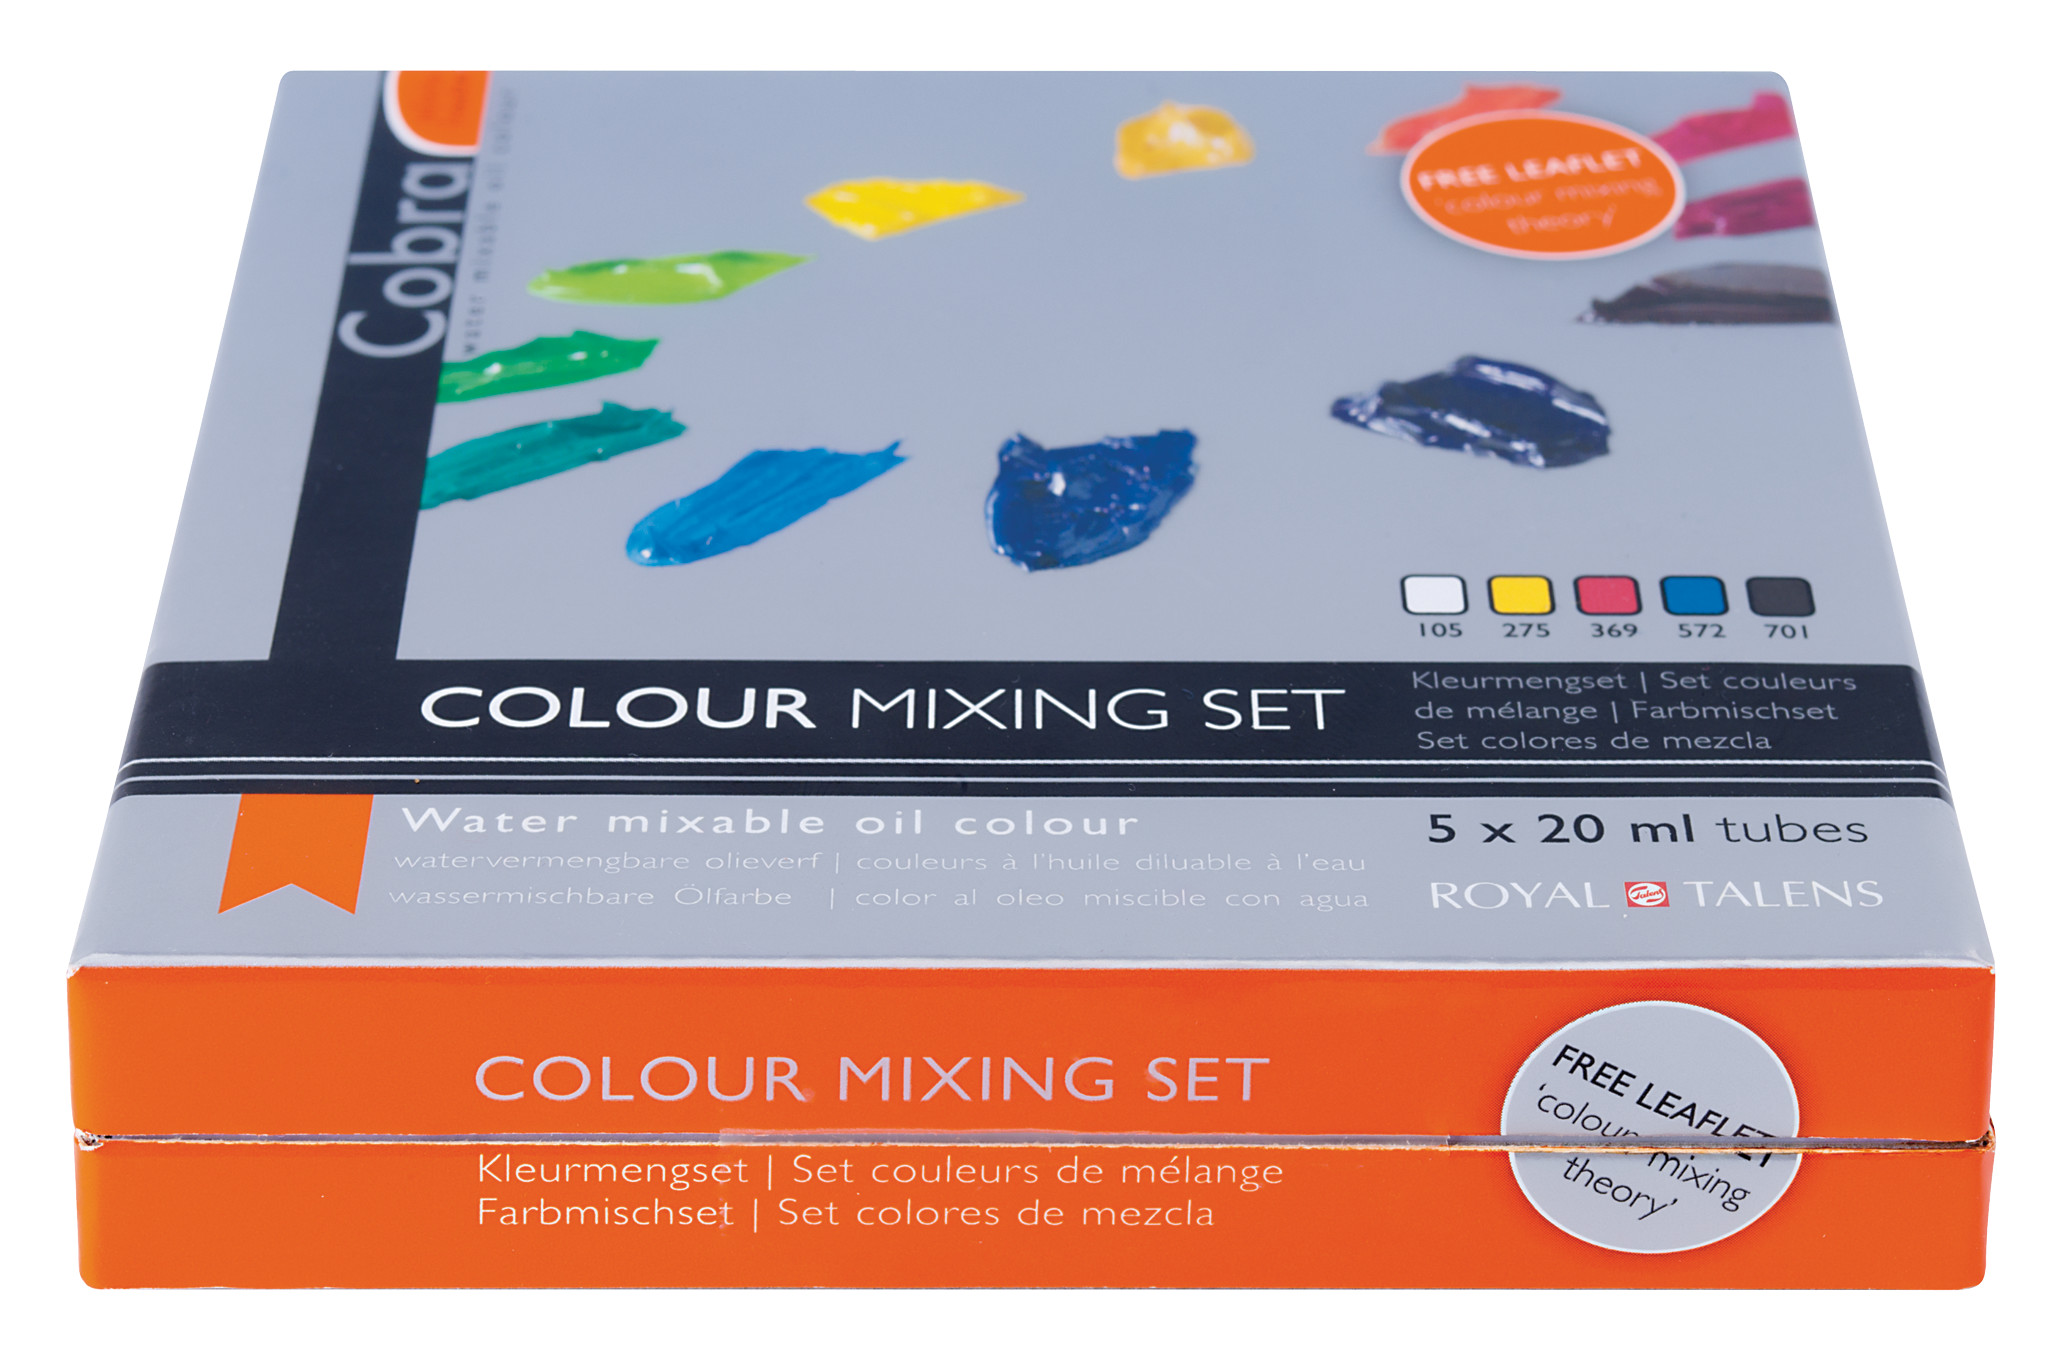 Cobra Artist Water Mixable Oil Colour Mixing Set